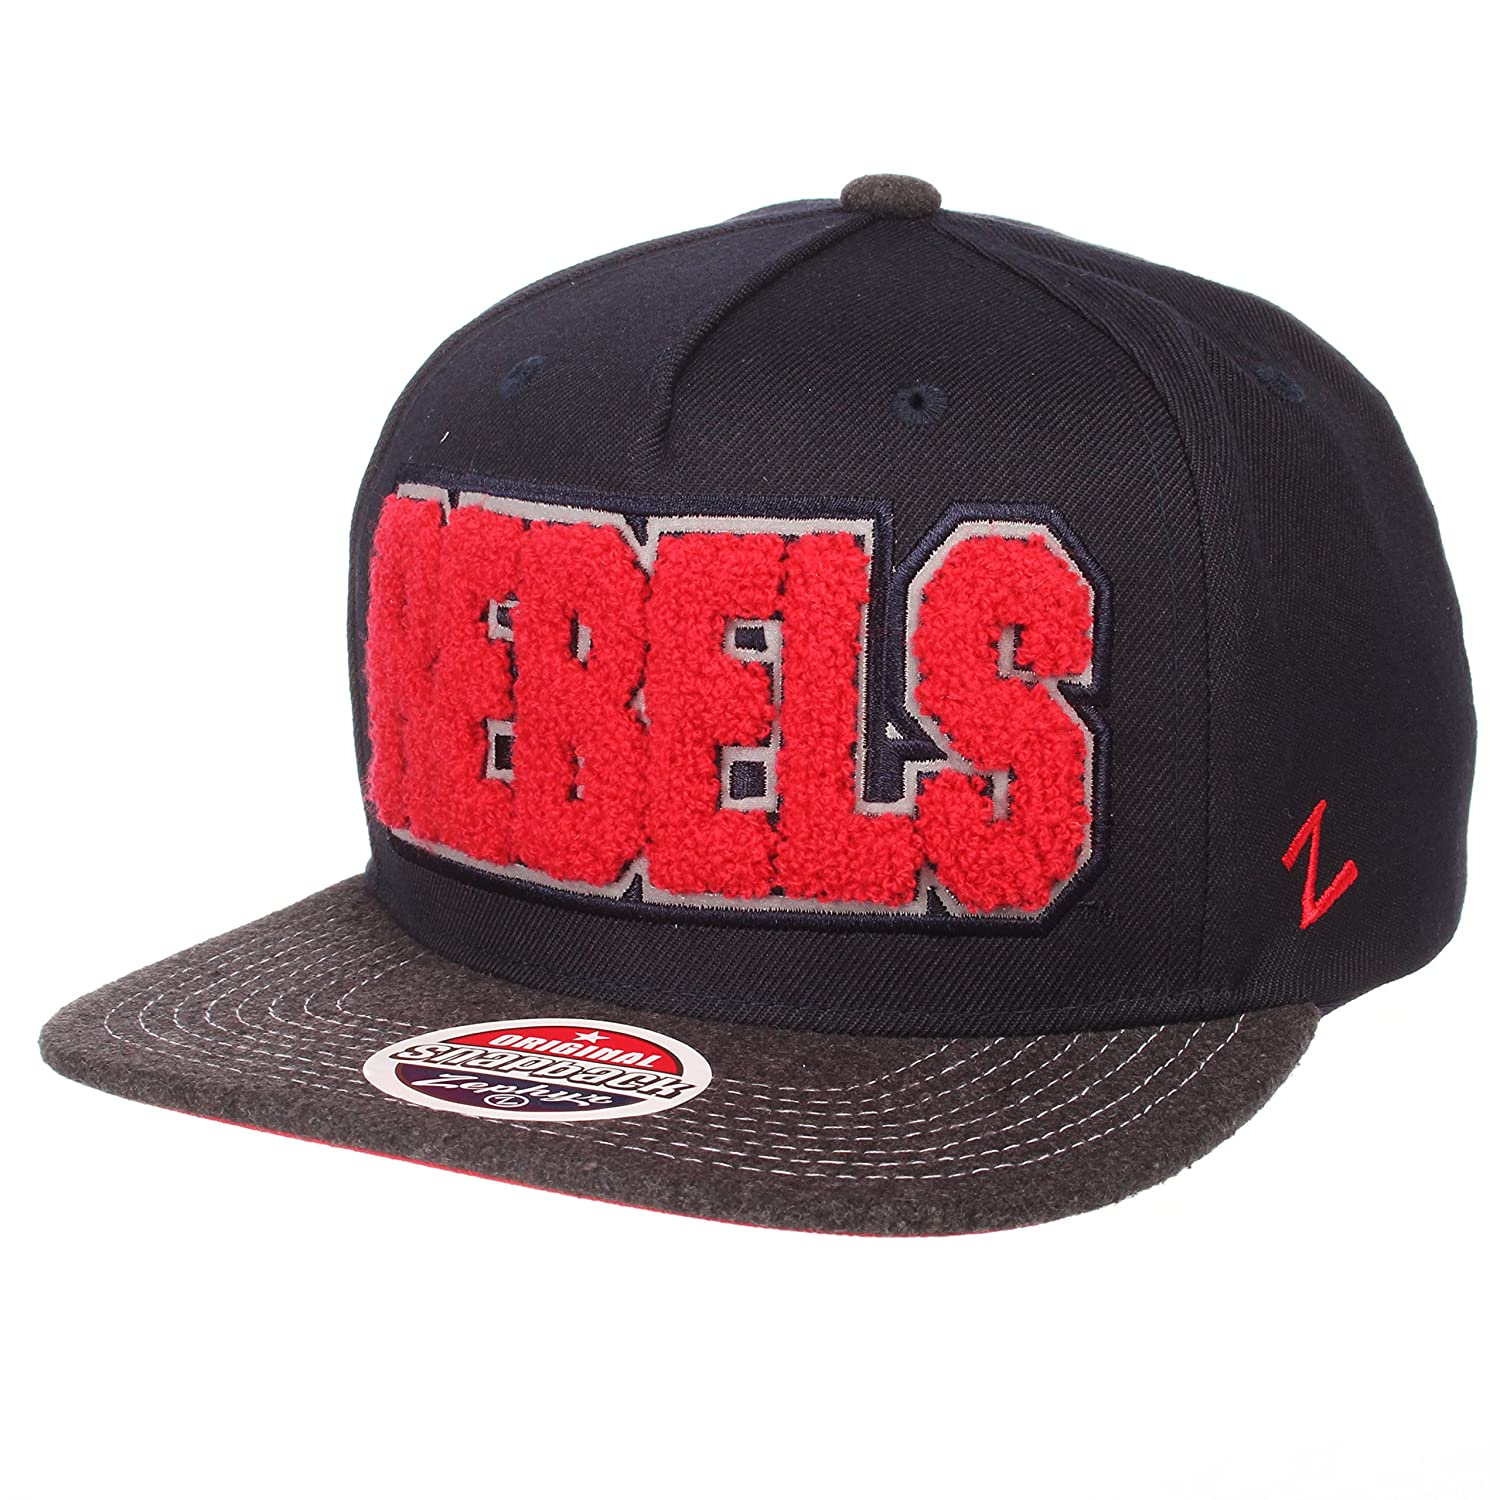 d9caf7876 where to buy ole miss rebels zephyr ncaa reflector snapback cap ...